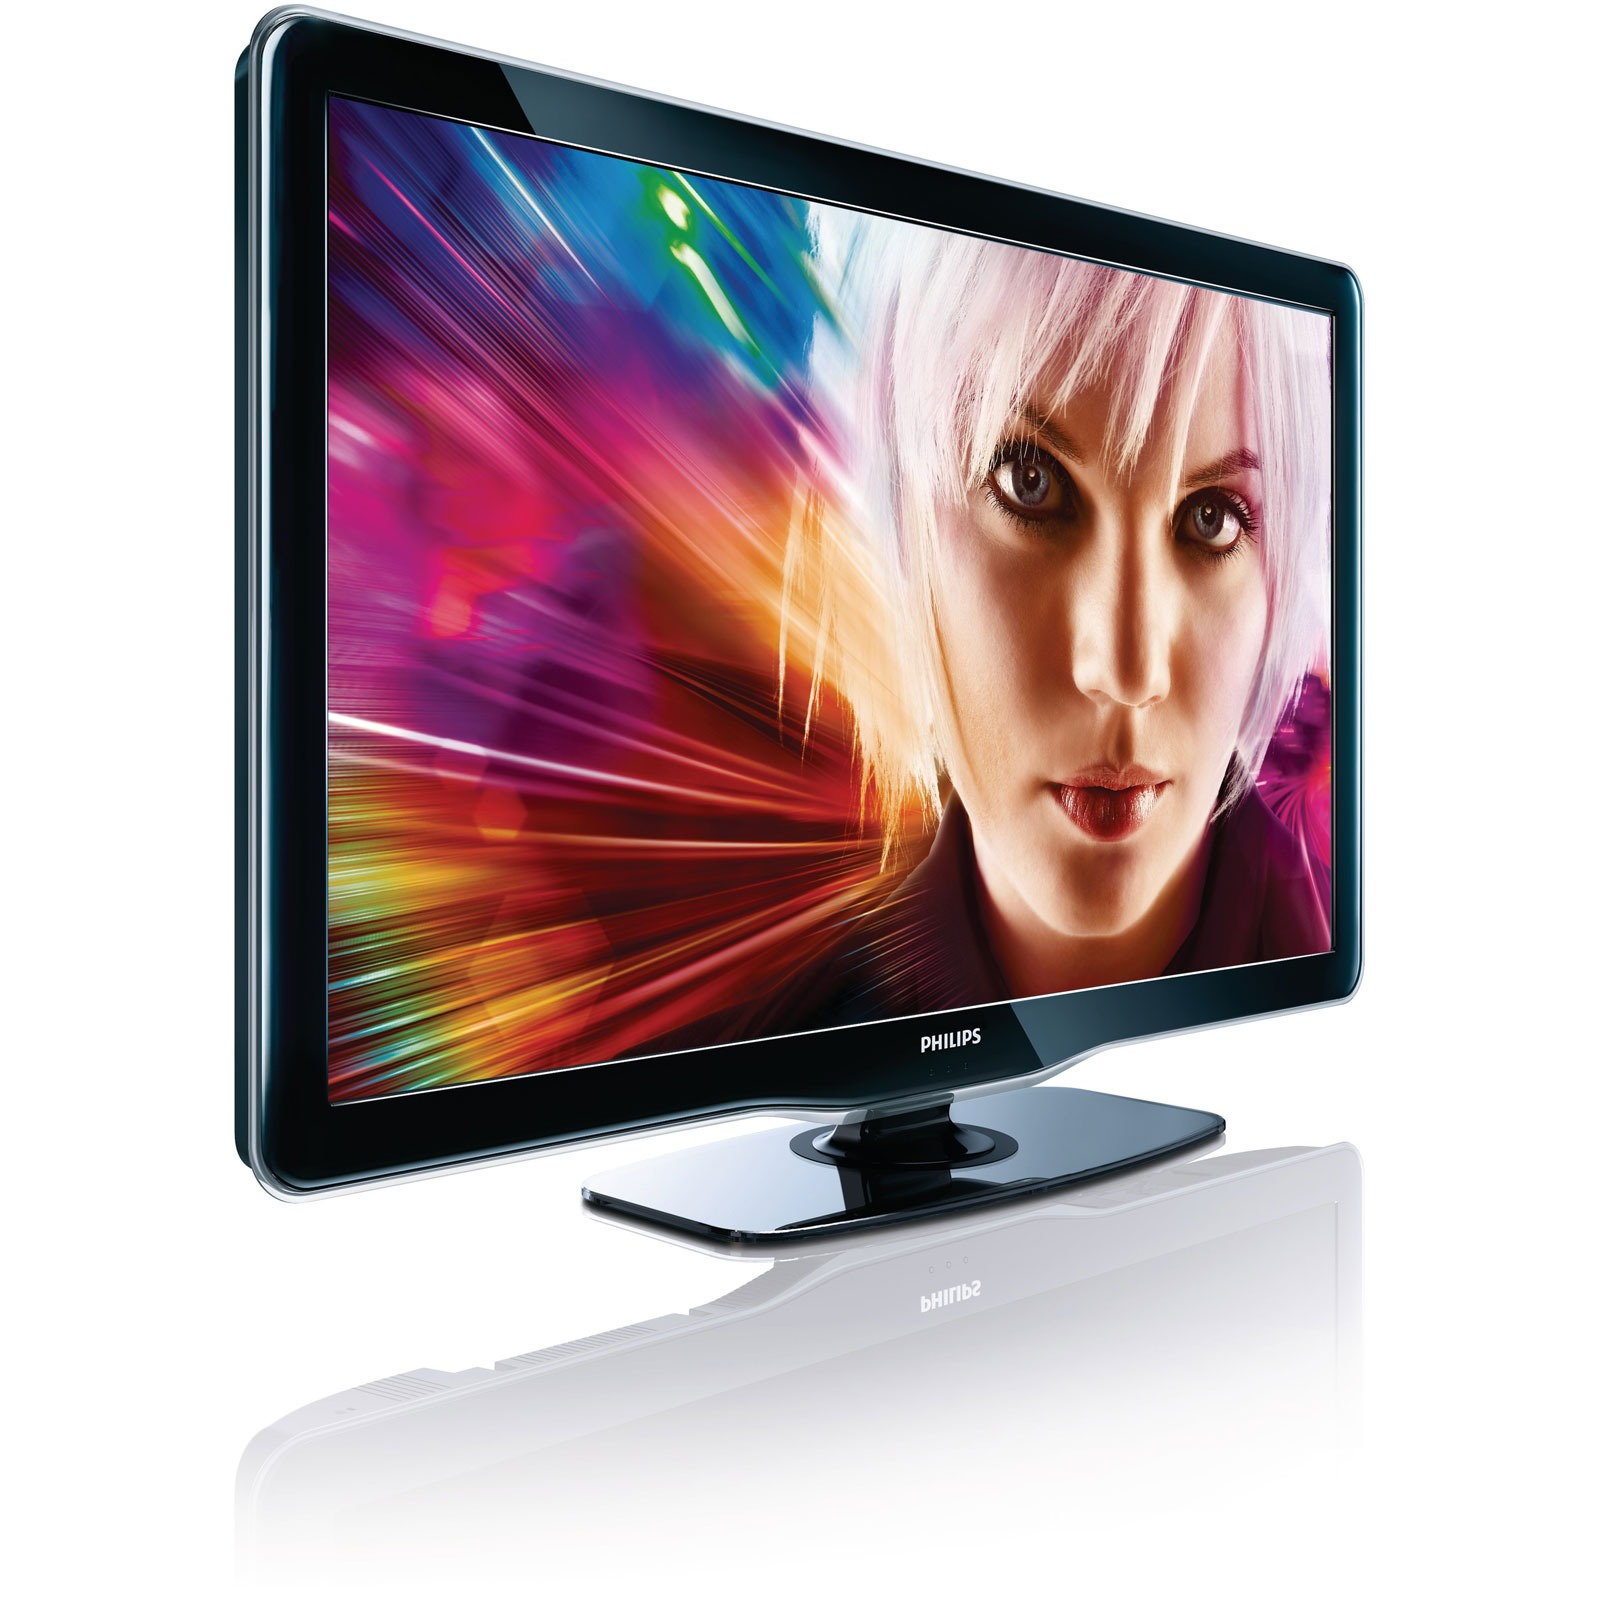 philips 40pfl5605h tv led full hd 40 tuner tnt hd tv philips sur. Black Bedroom Furniture Sets. Home Design Ideas